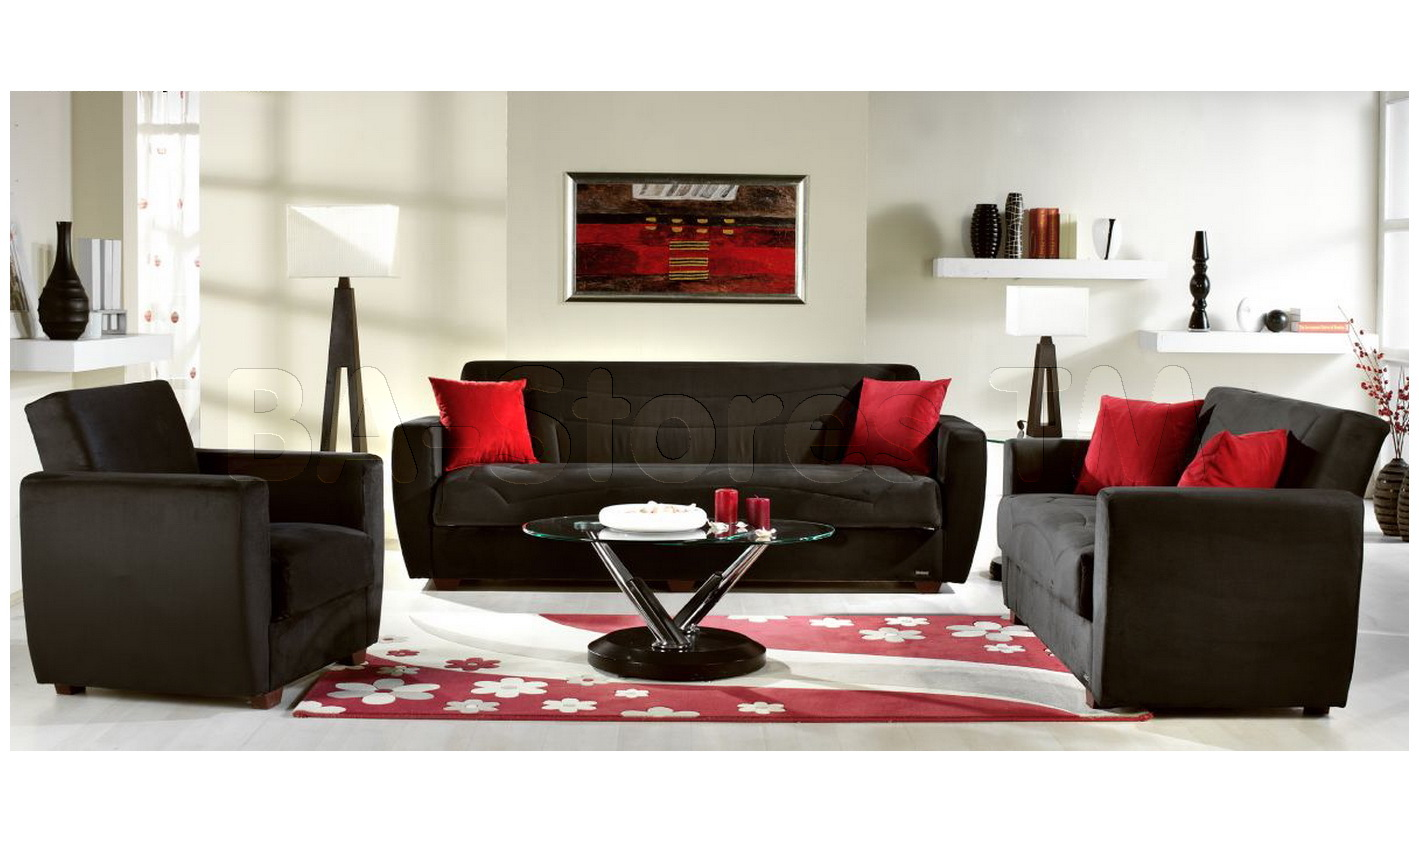 Black Sofas Of Modern Look In A Living Room : Miami Sofa Bed In Rainbow Black